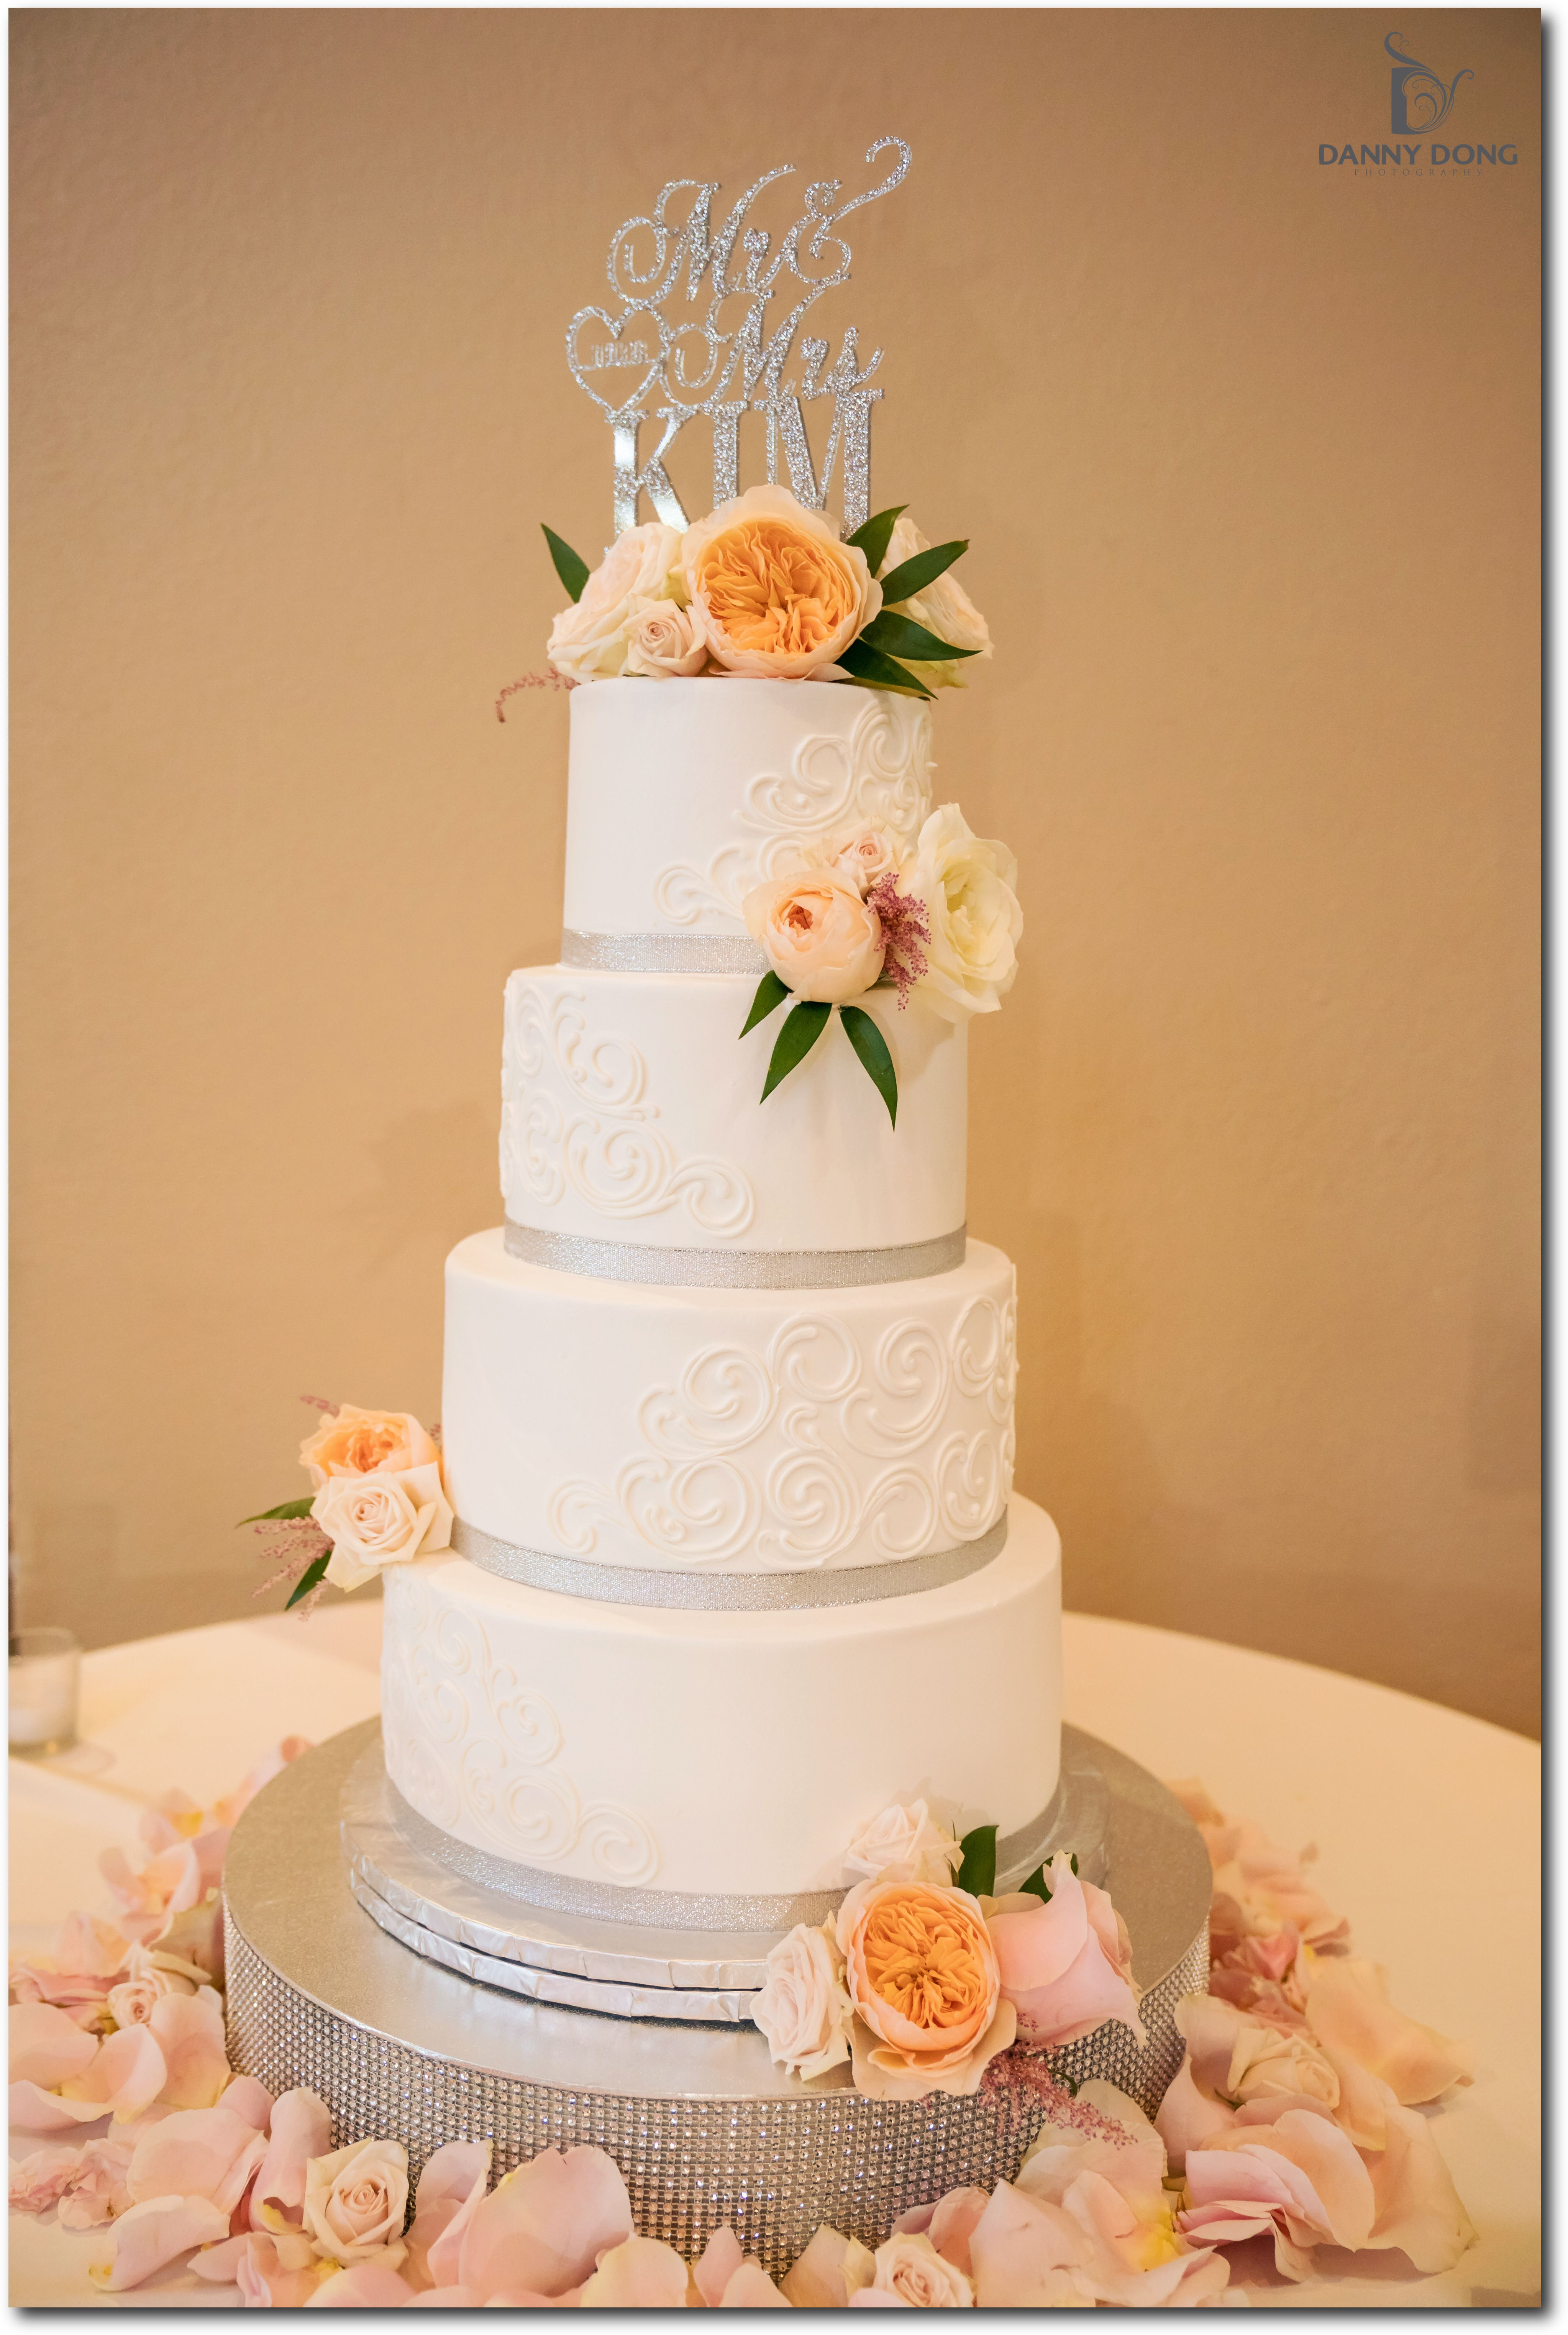 Gorgeous Wedding Cake By Gala Bakery Topped With Fresh Roses And